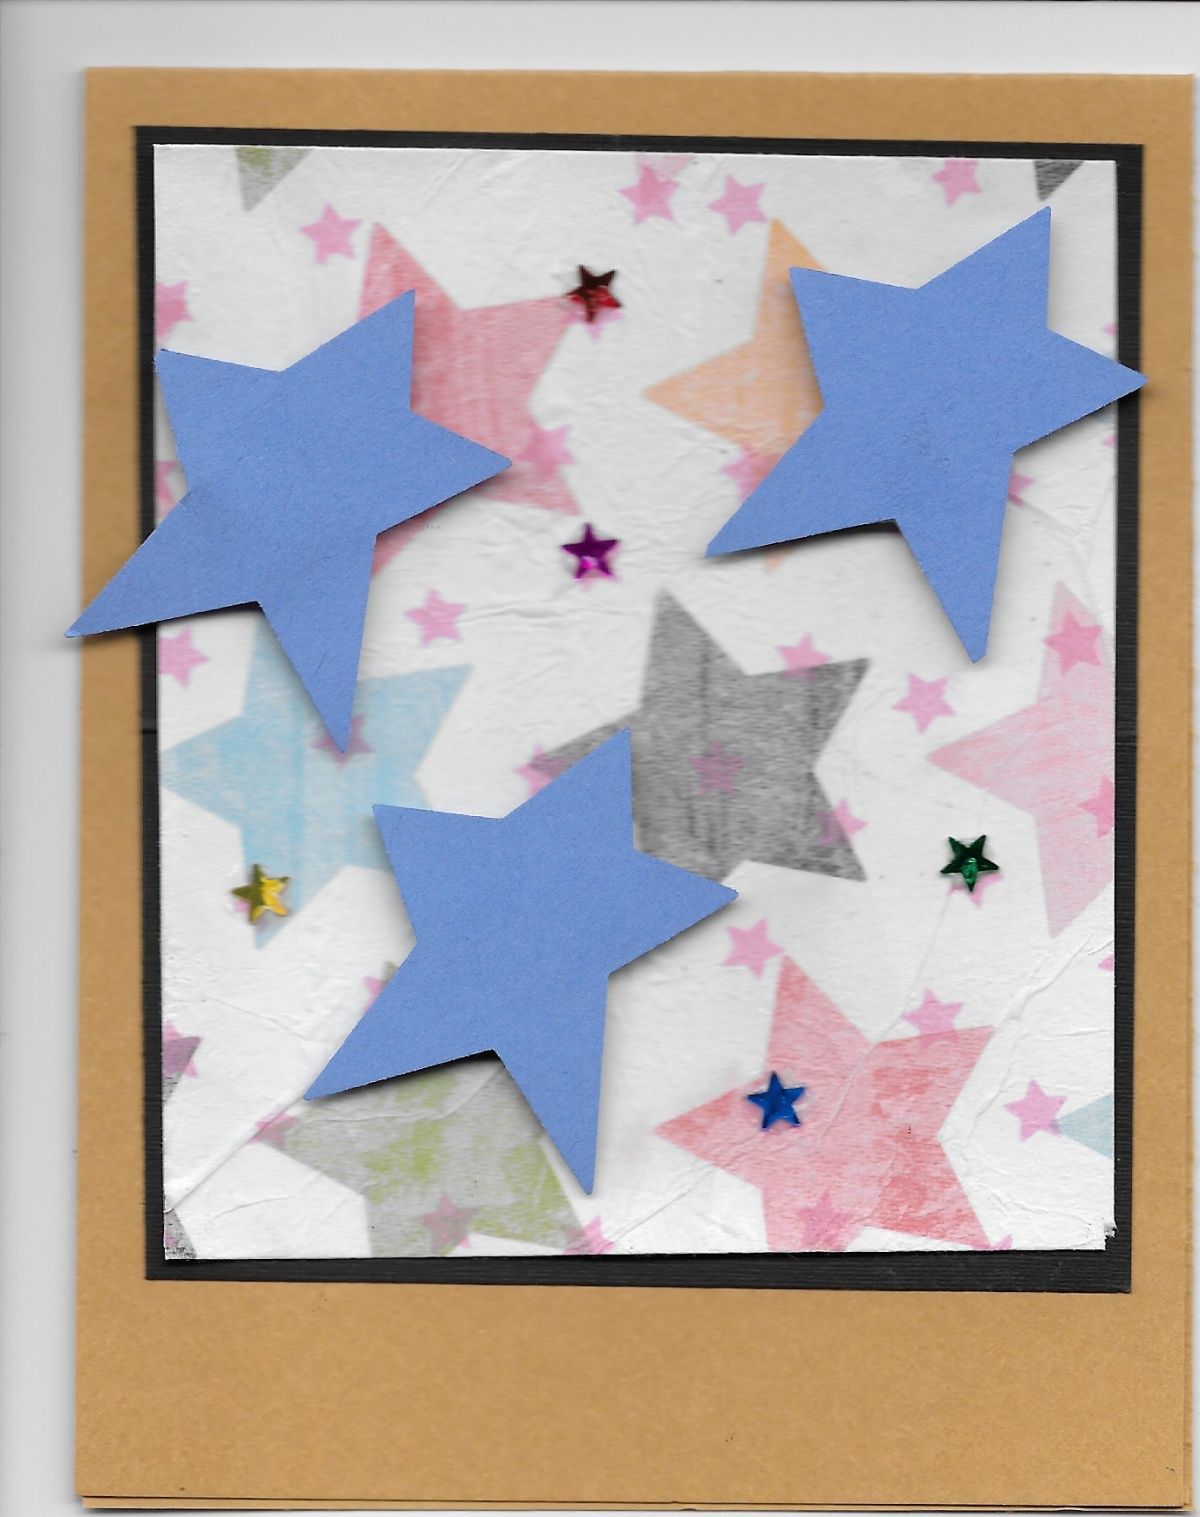 This is my version using star printed paper and tissue paper with stars then  tiny star confetti on top..